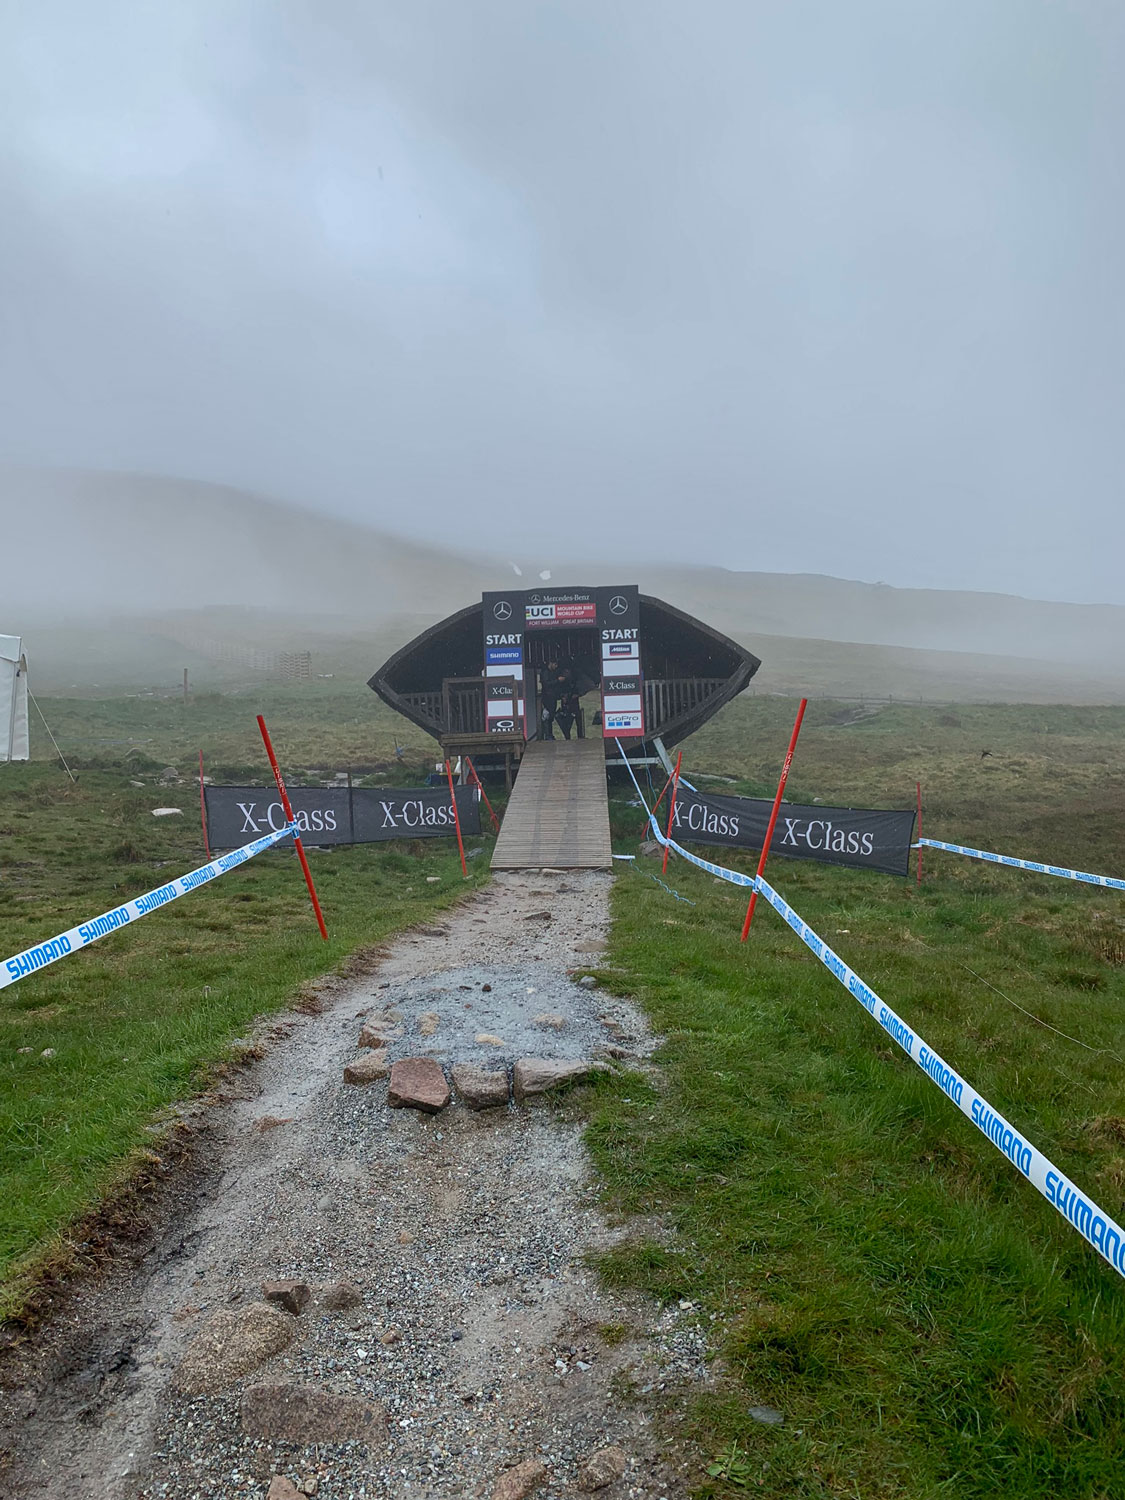 The start hut at Fort William